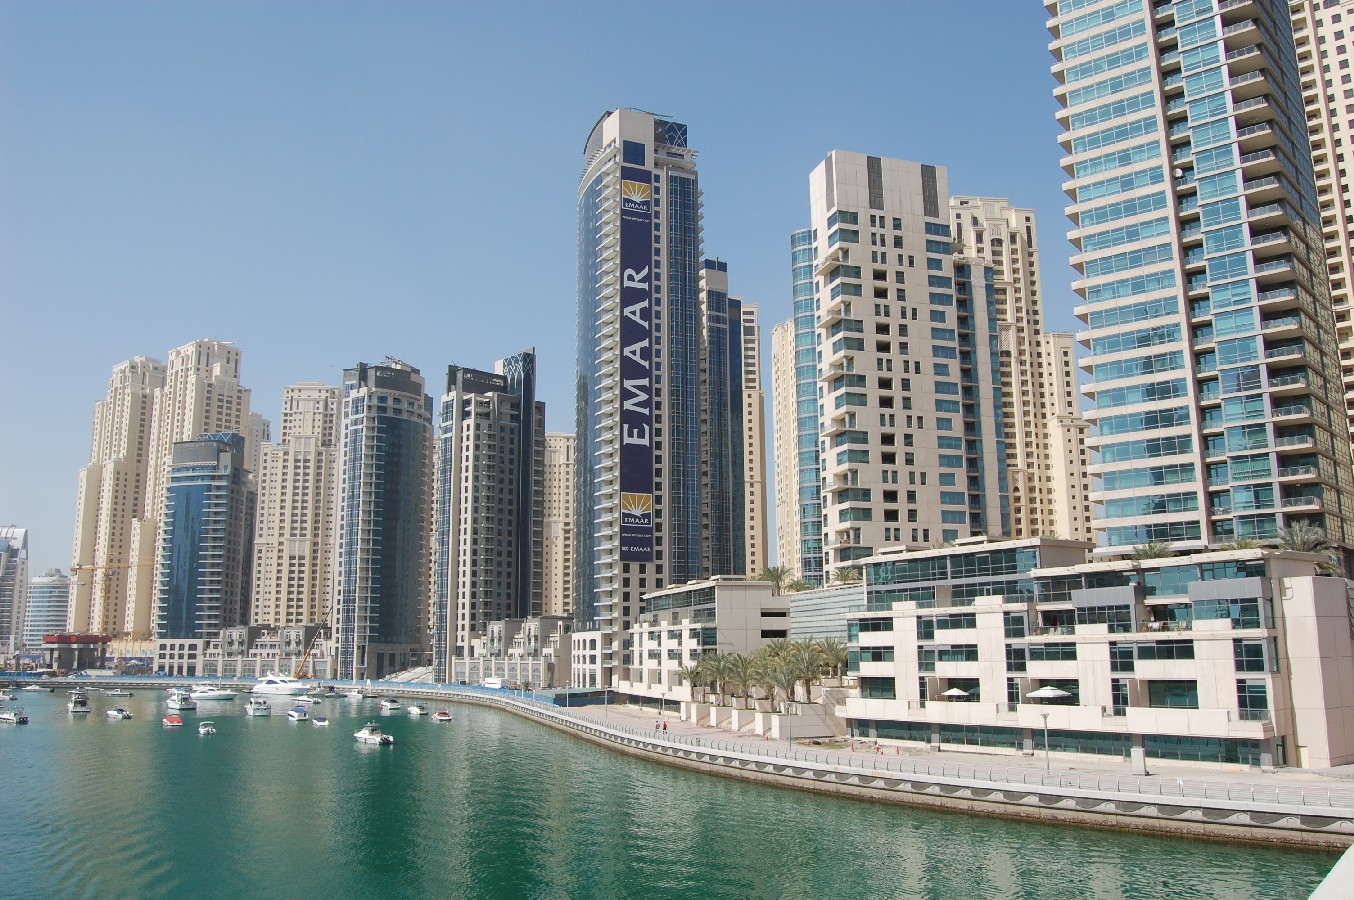 Ihram Kids For Sale Dubai: Dubai Marina Real Estate Apartment Apartments Real Estate